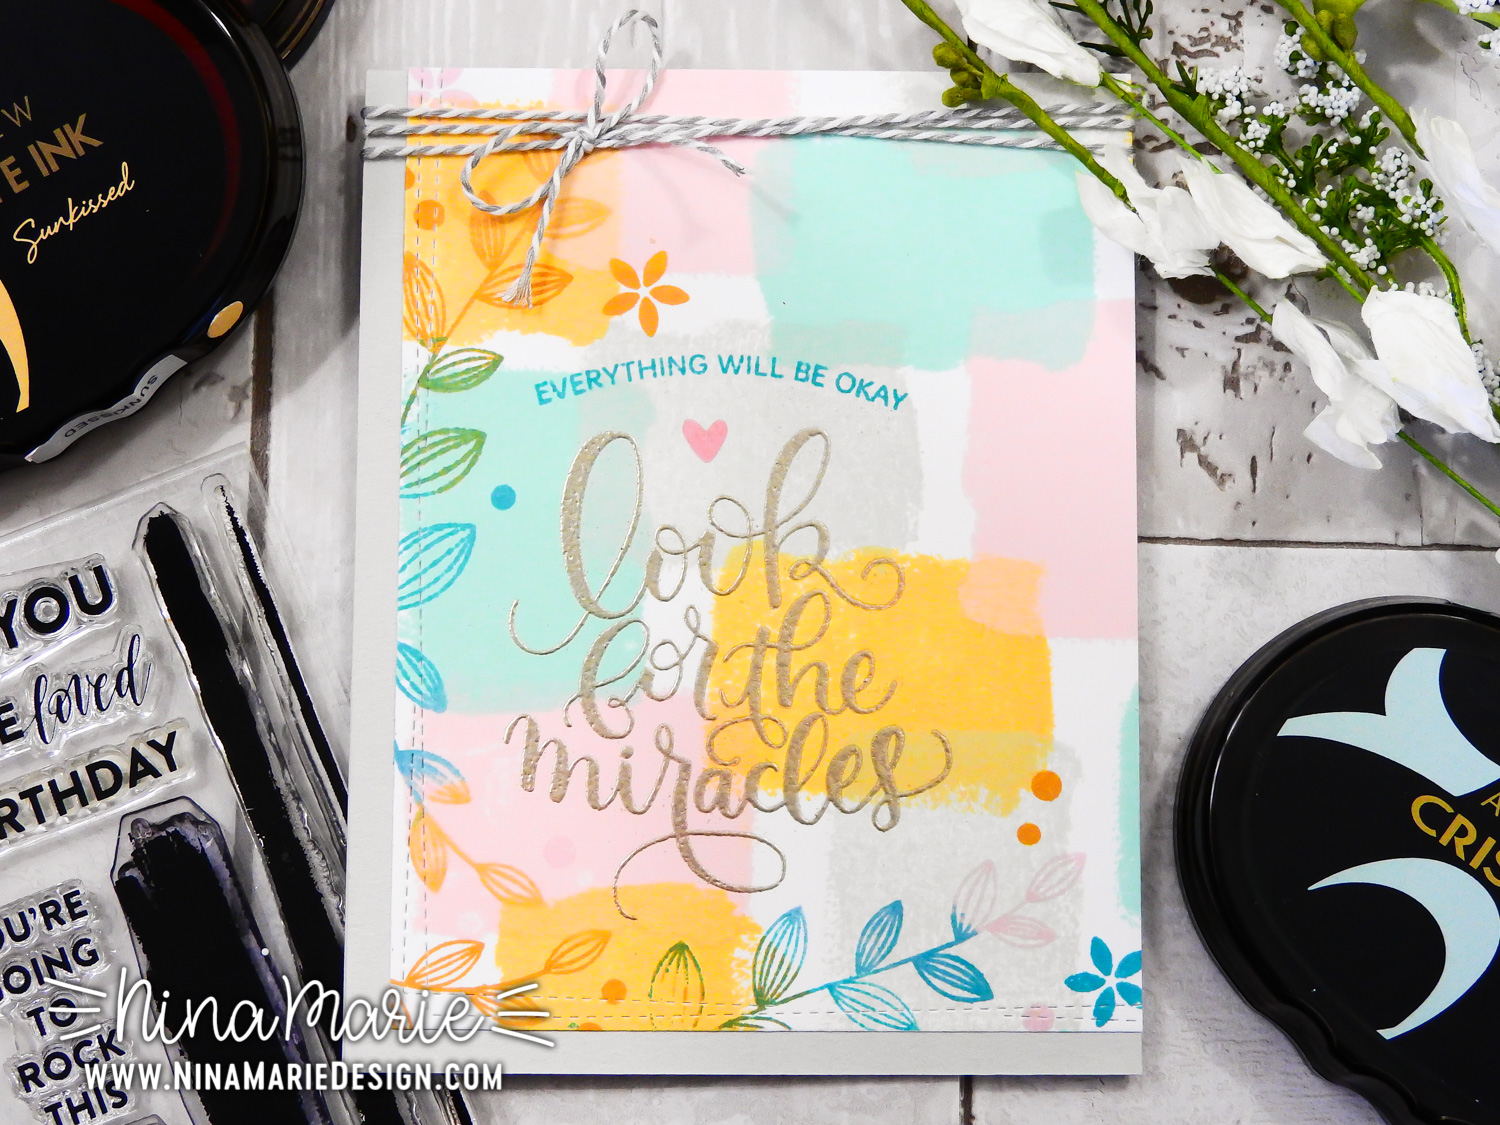 Brushstroke Pattern Stamping Featuring Simon Says Stamp Products | Nina-Marie Design